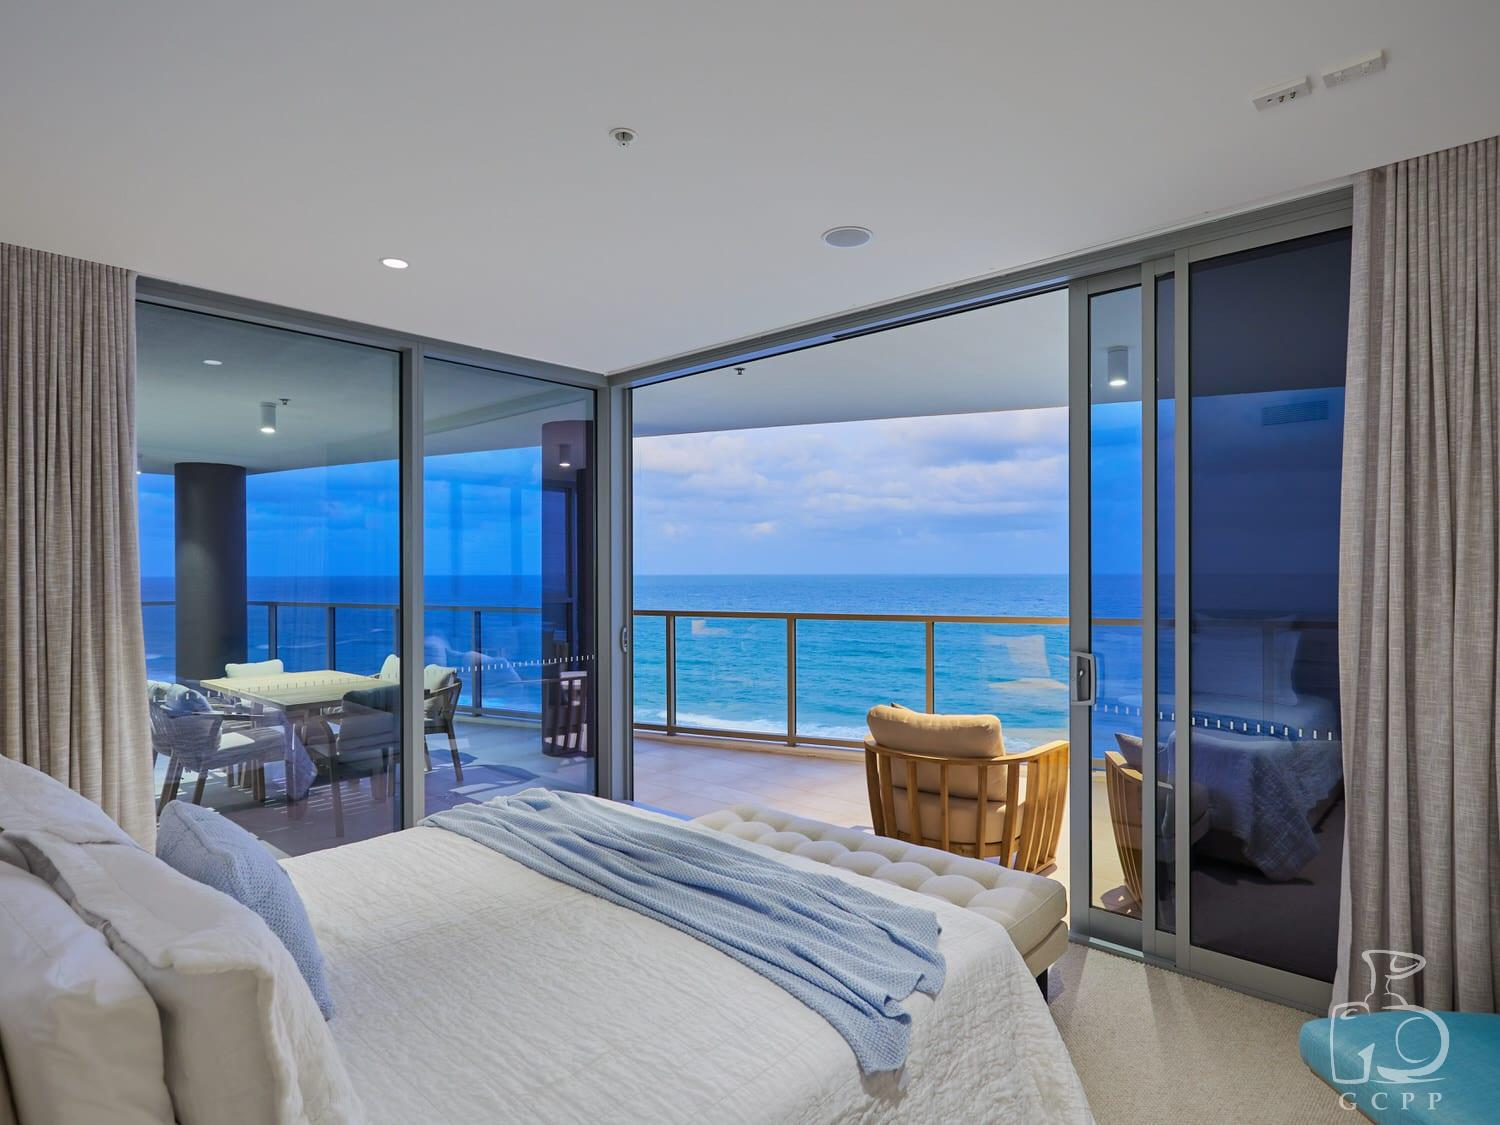 Northcliffe Terrace Apartments, Surfers Paradise - Gold Coast Property Photography